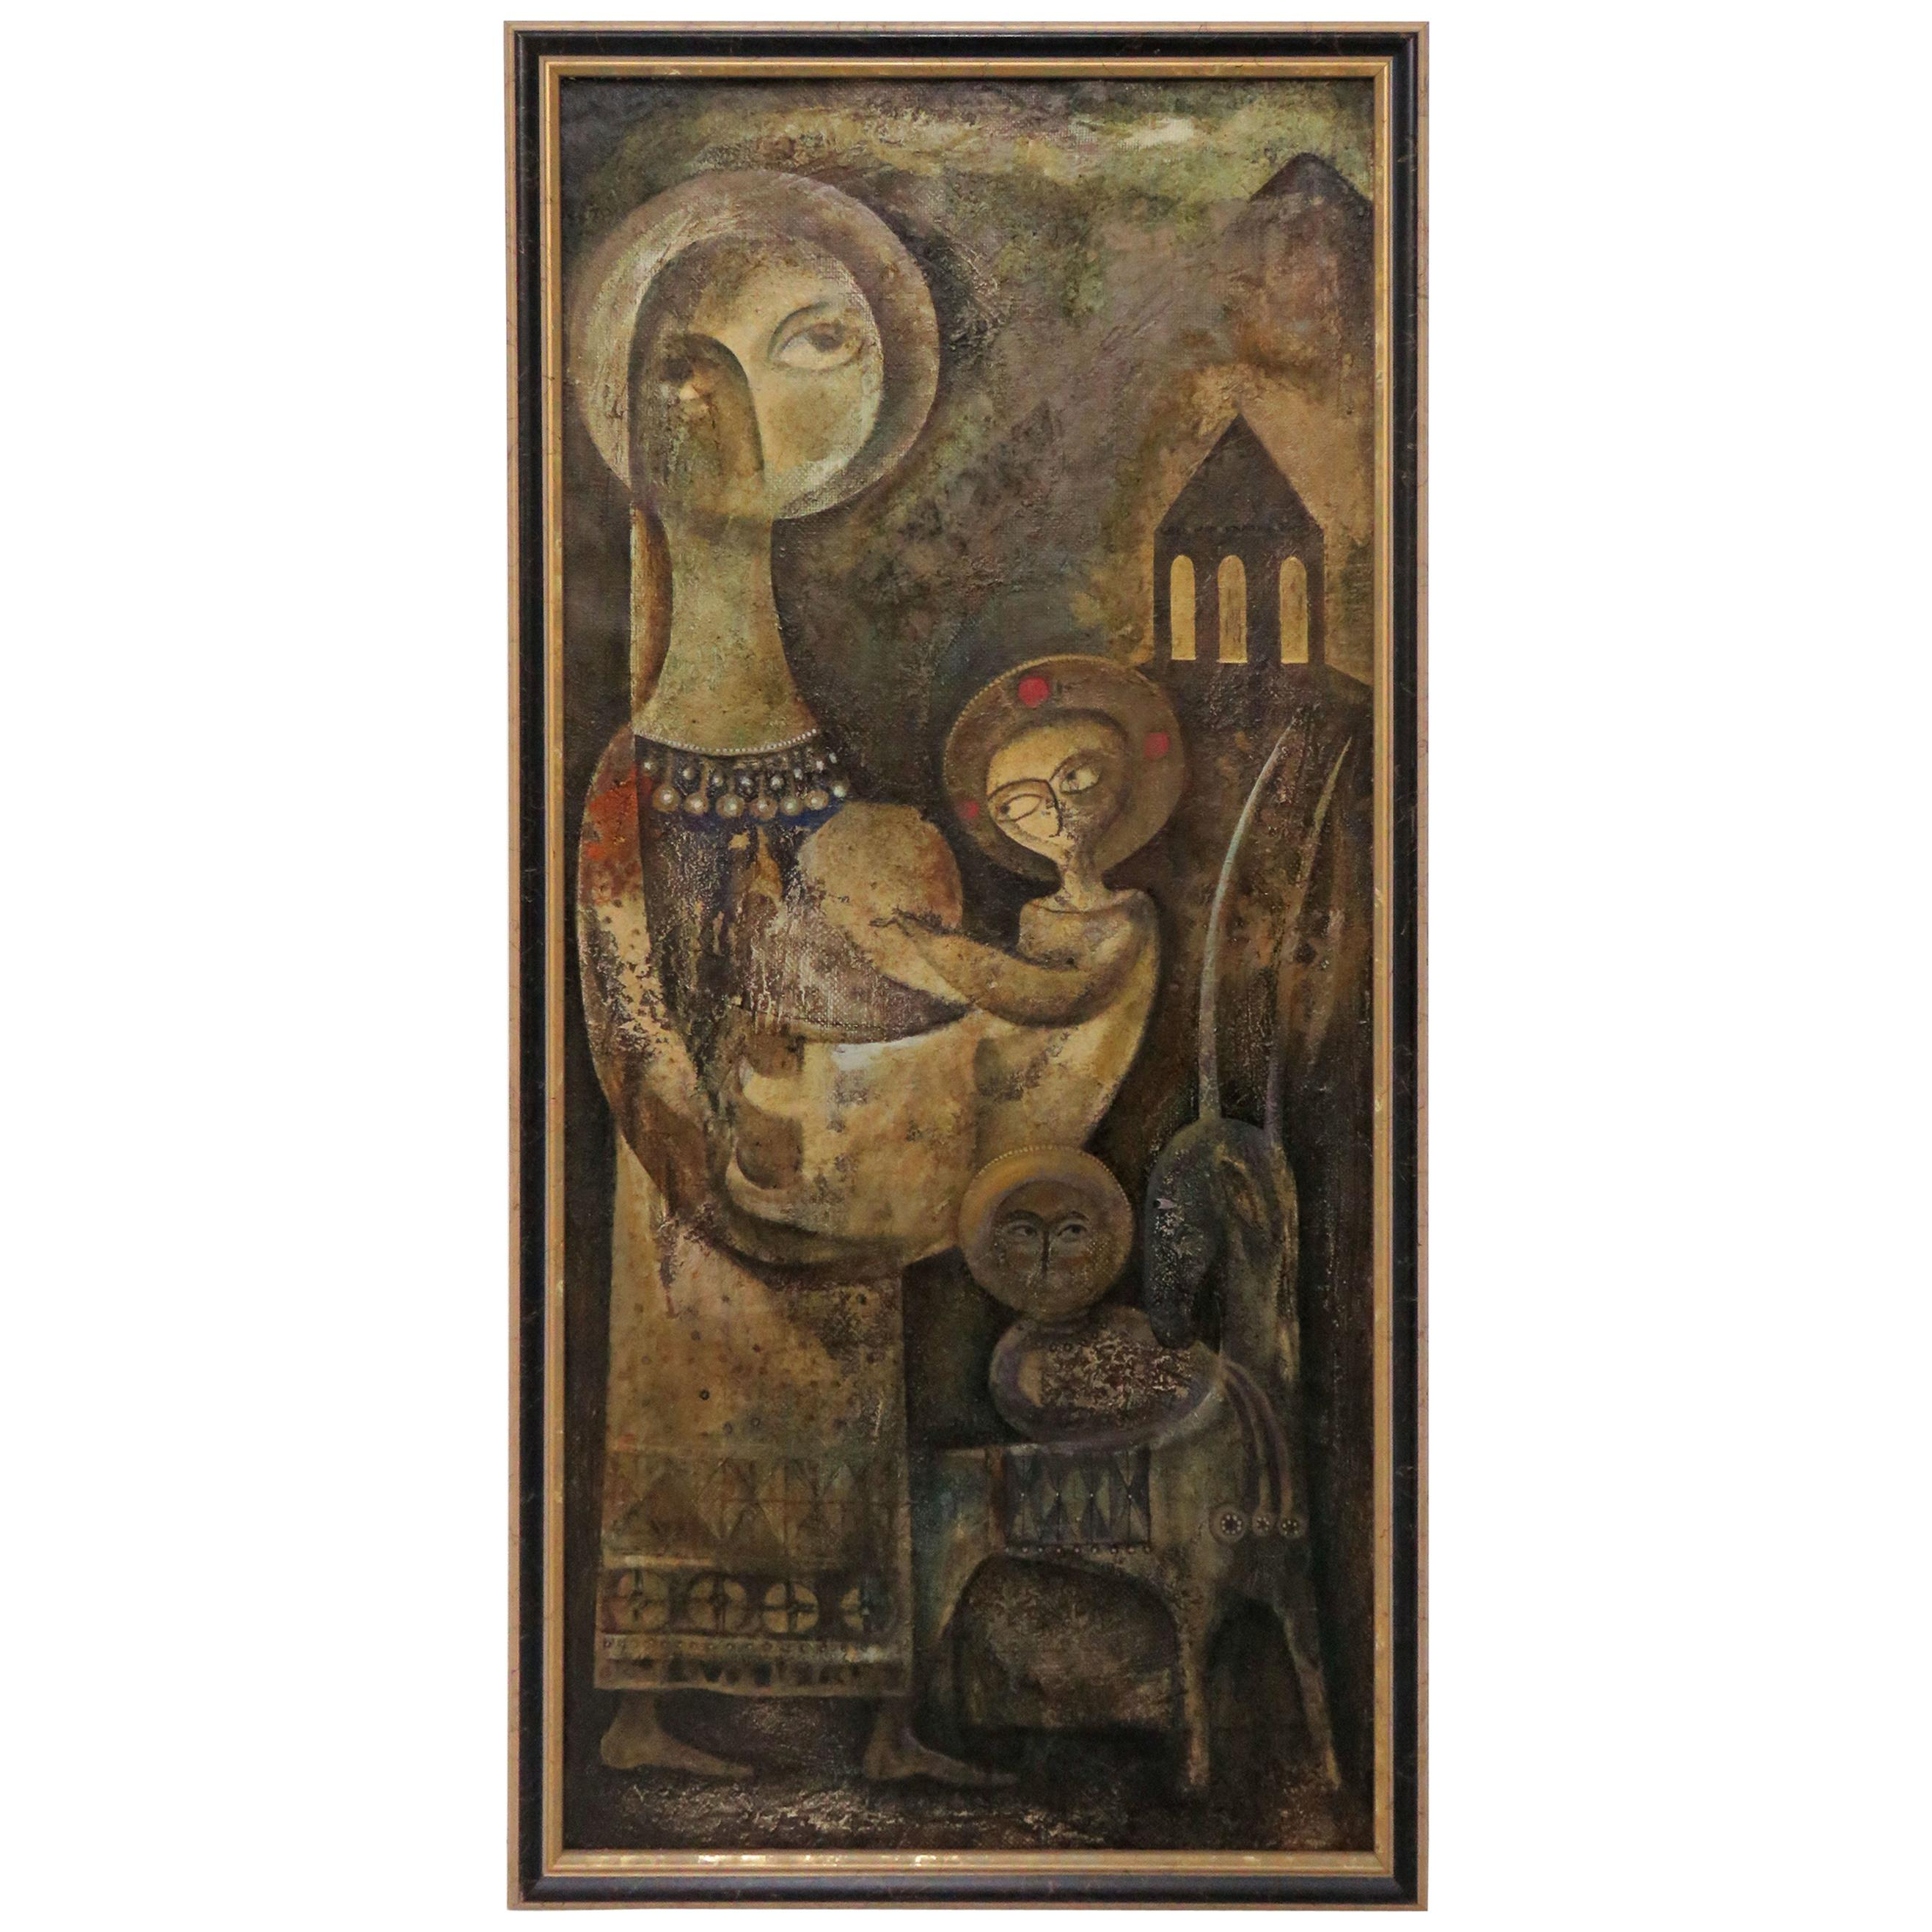 Modernist Inspired Fable Painting by Armenian Artist A. Mouradian